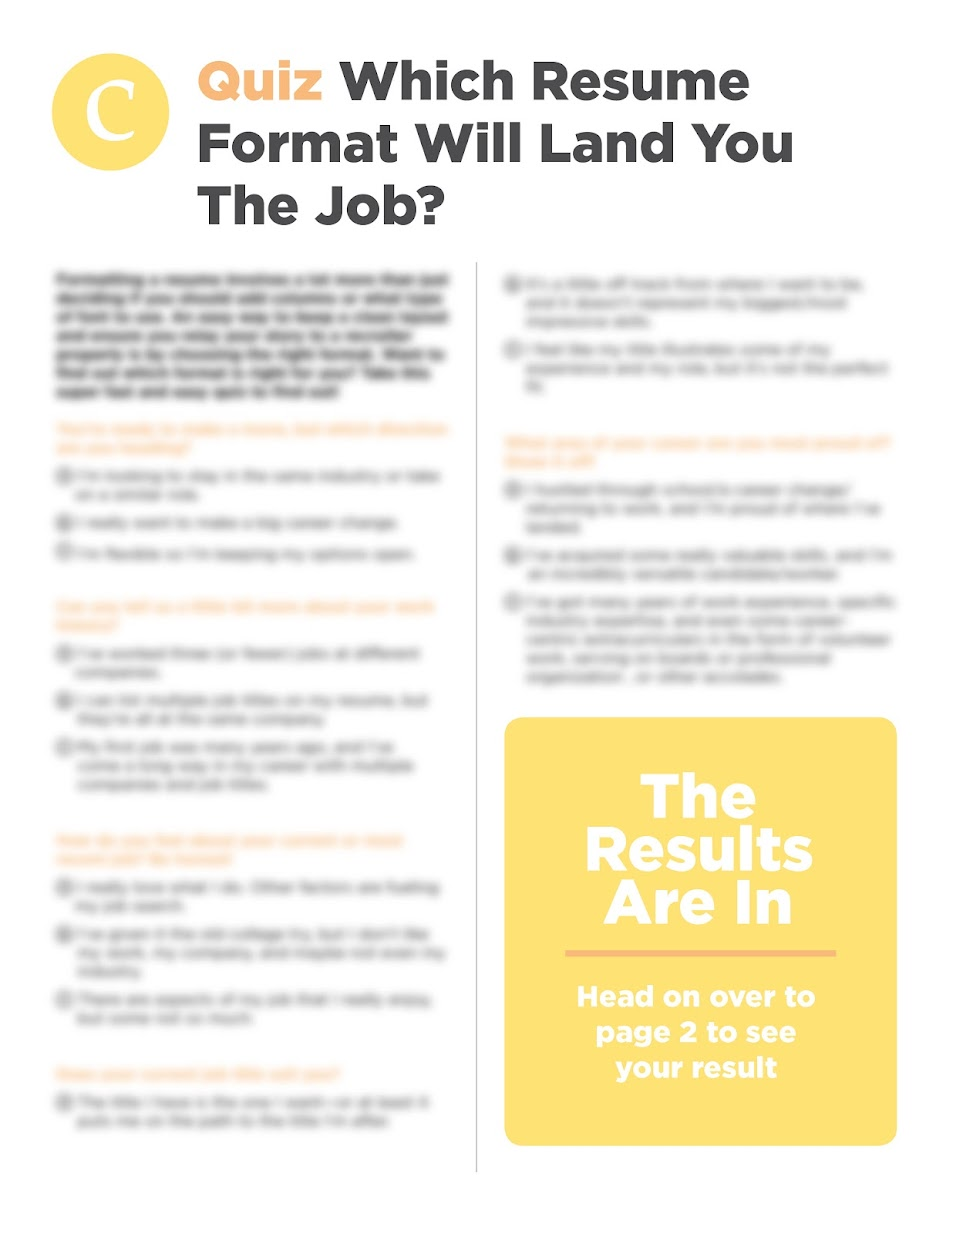 so whats the best answer for the ideal resume layout that depends entirely on you